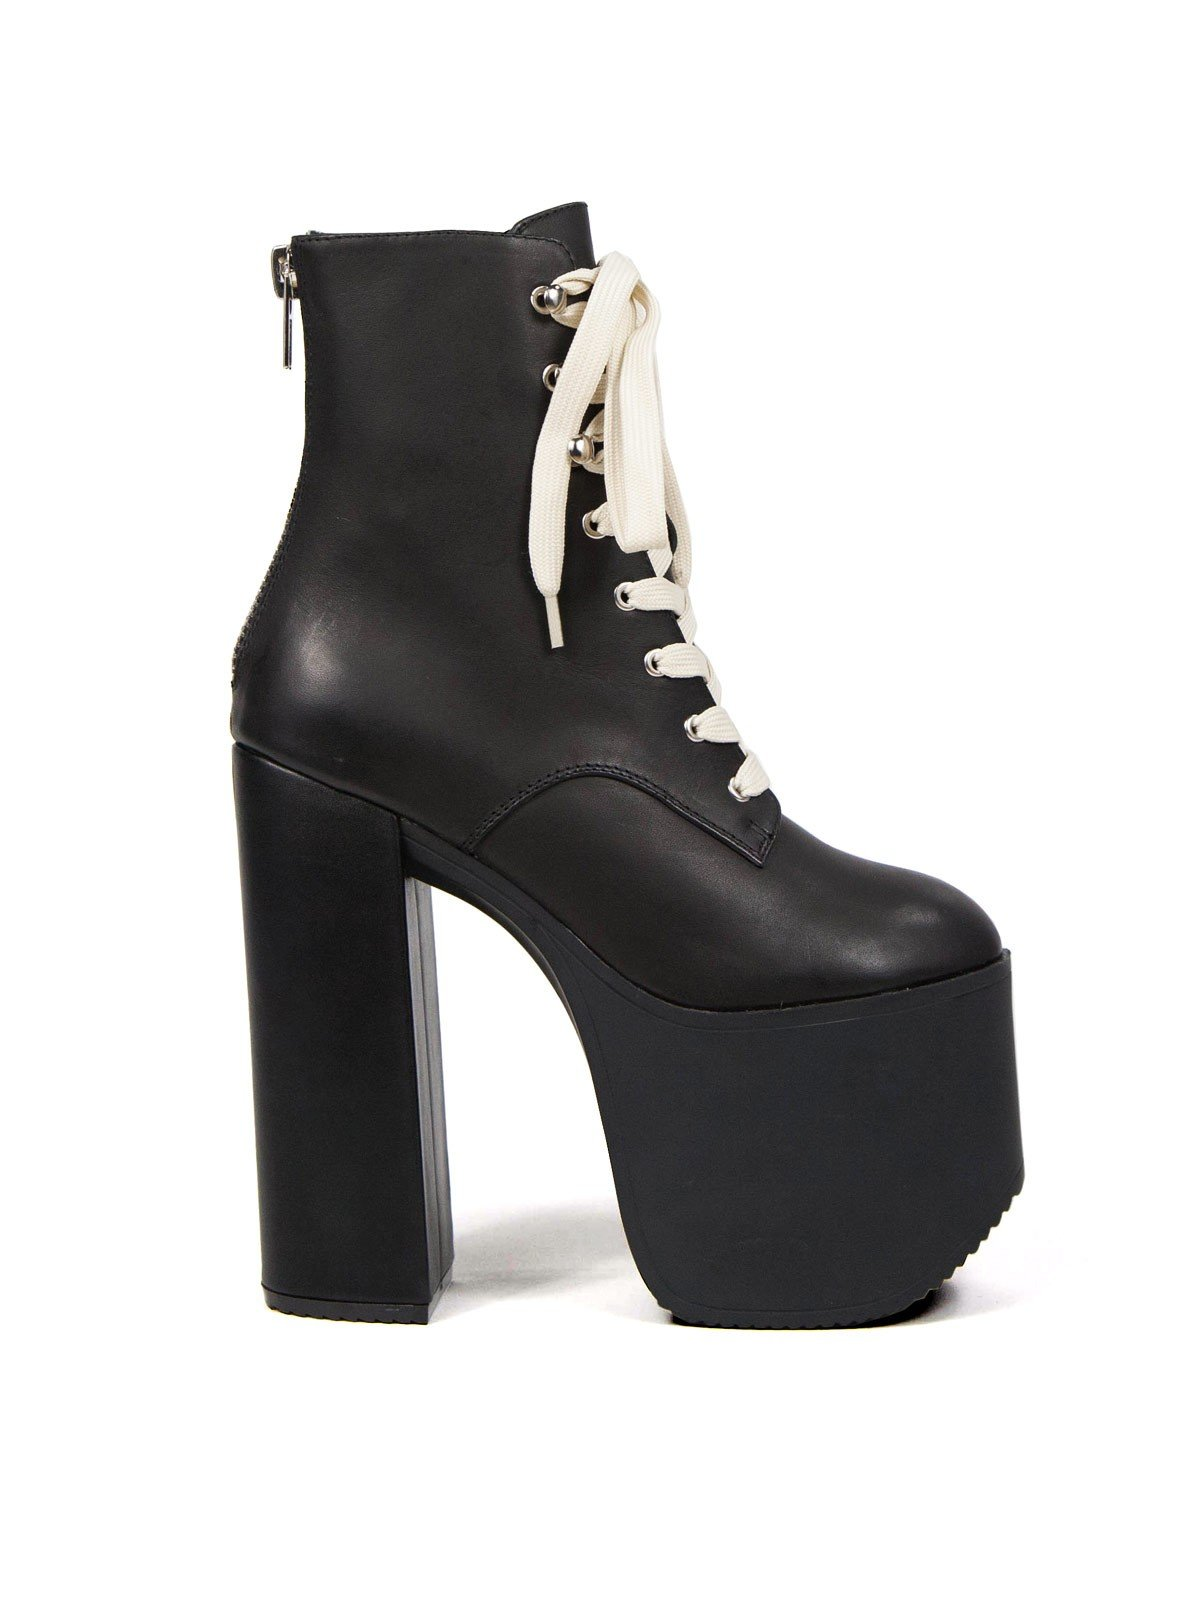 unif salem boots from unif i want